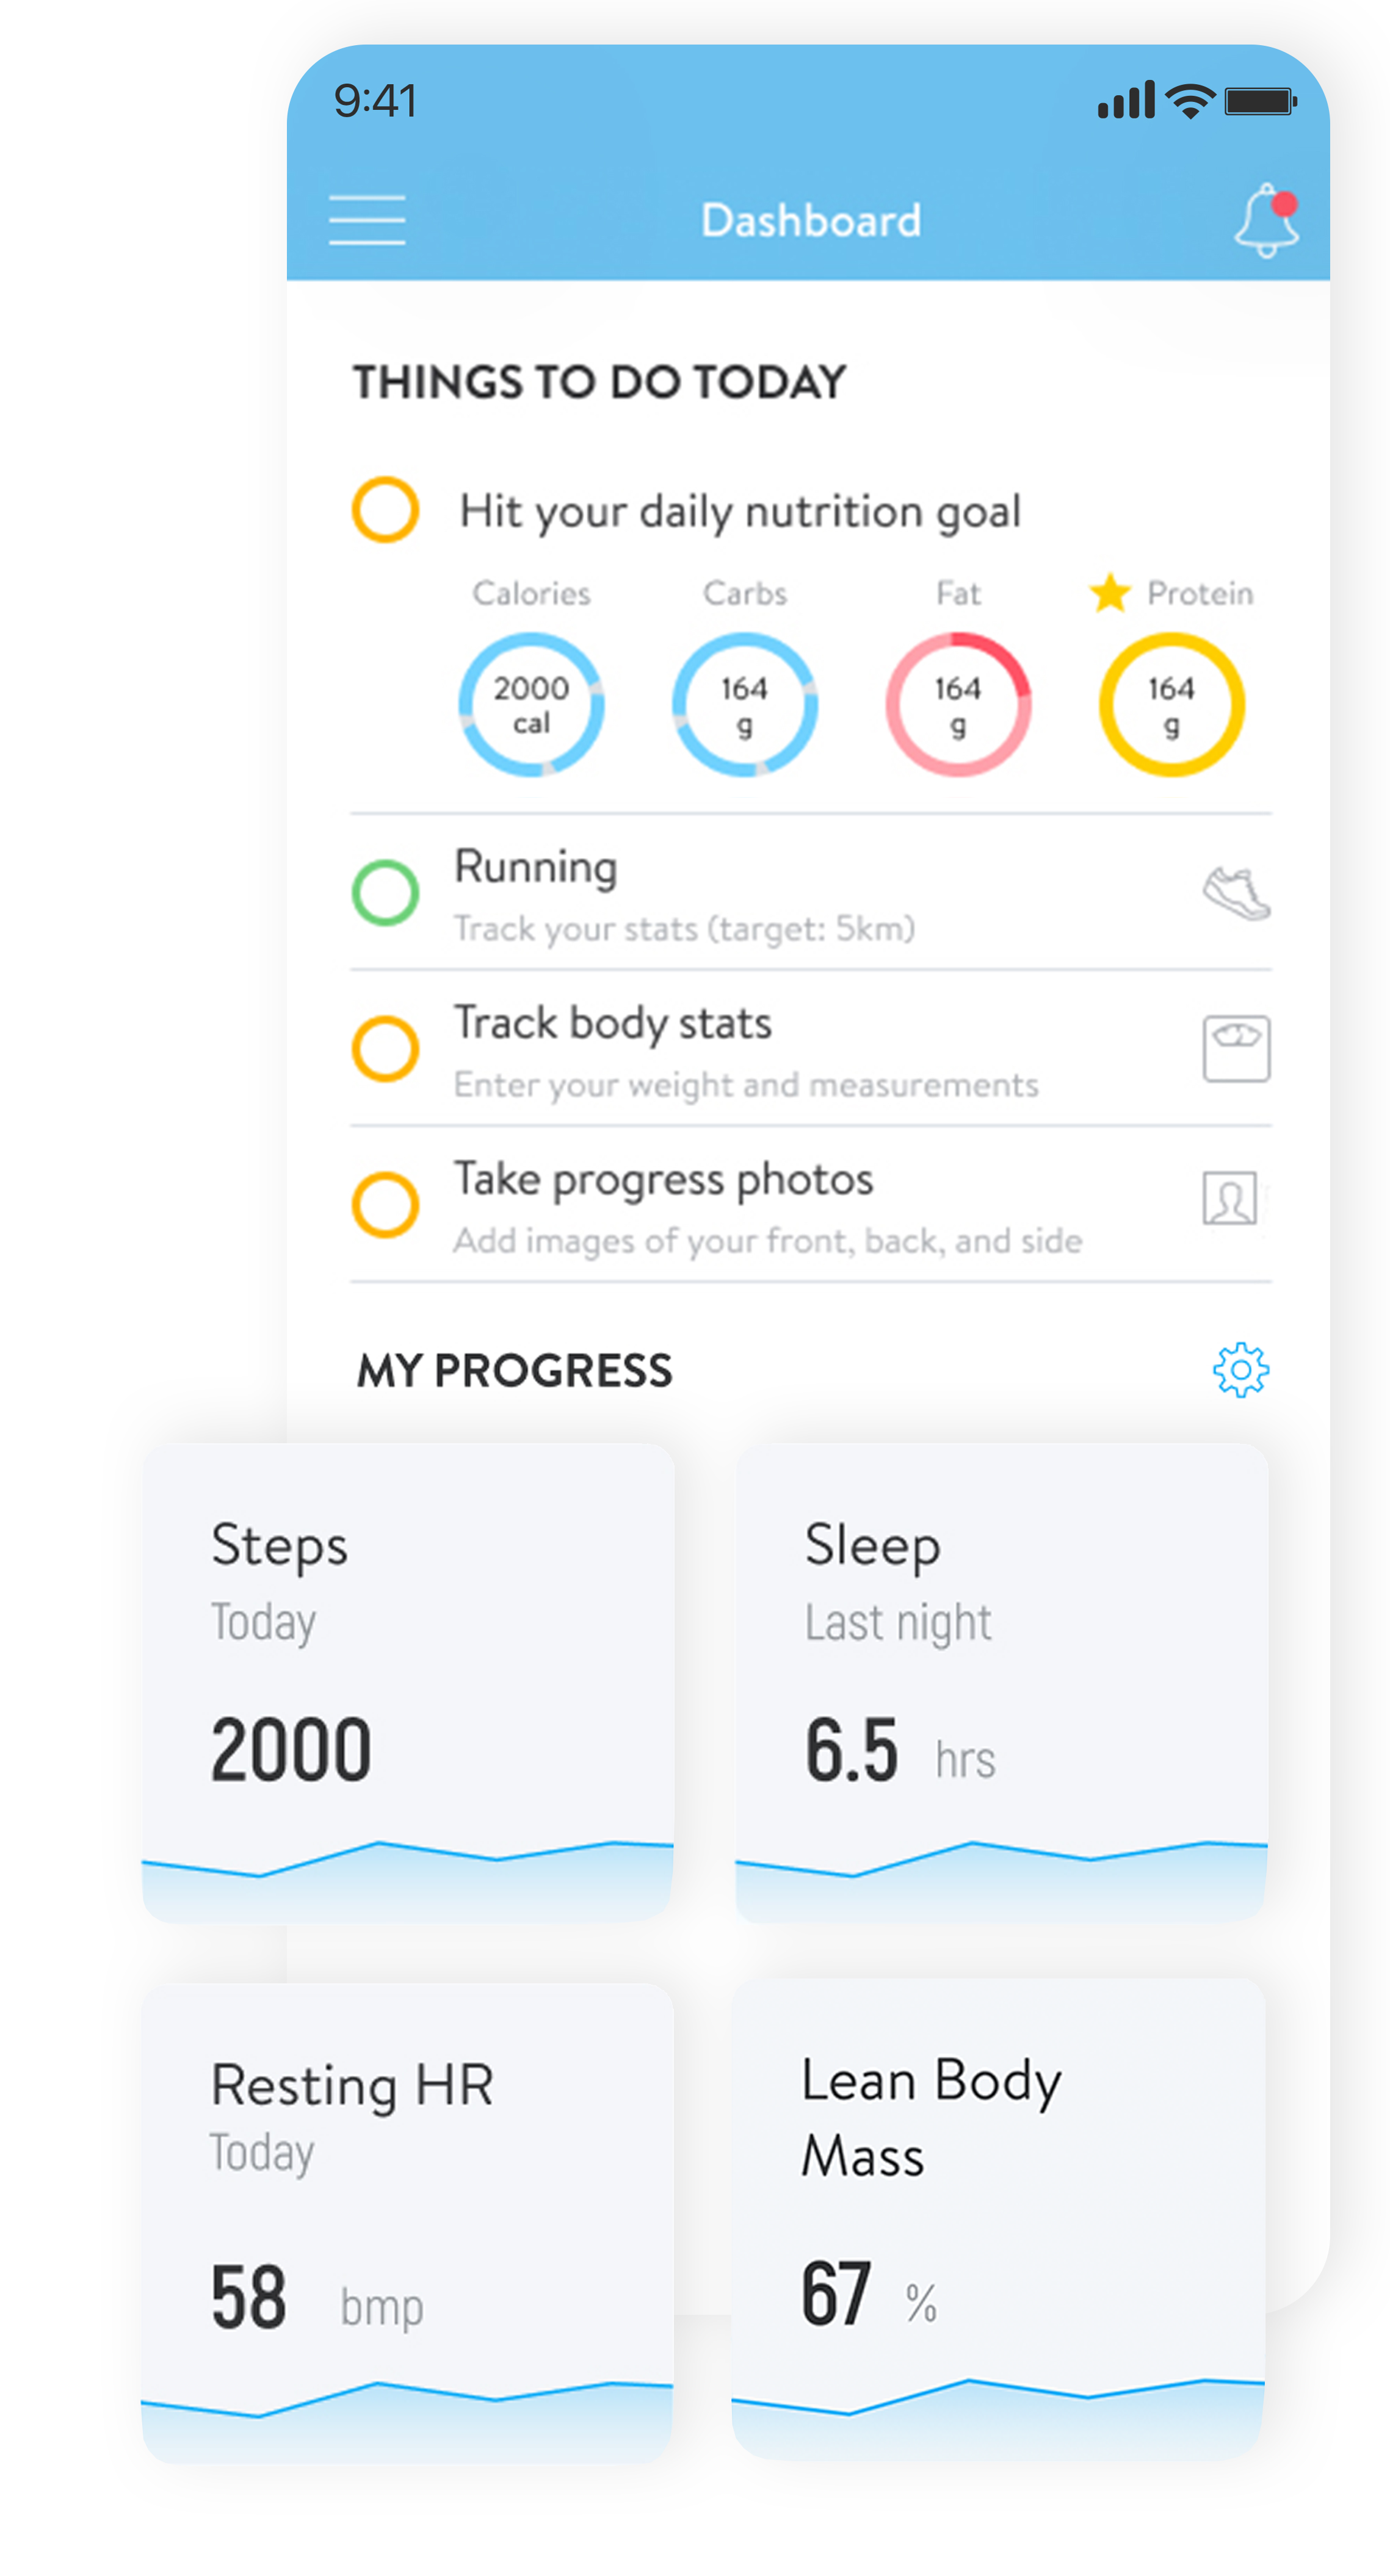 A new dashboard with new progress tiles to display data from Apple Health and wearables